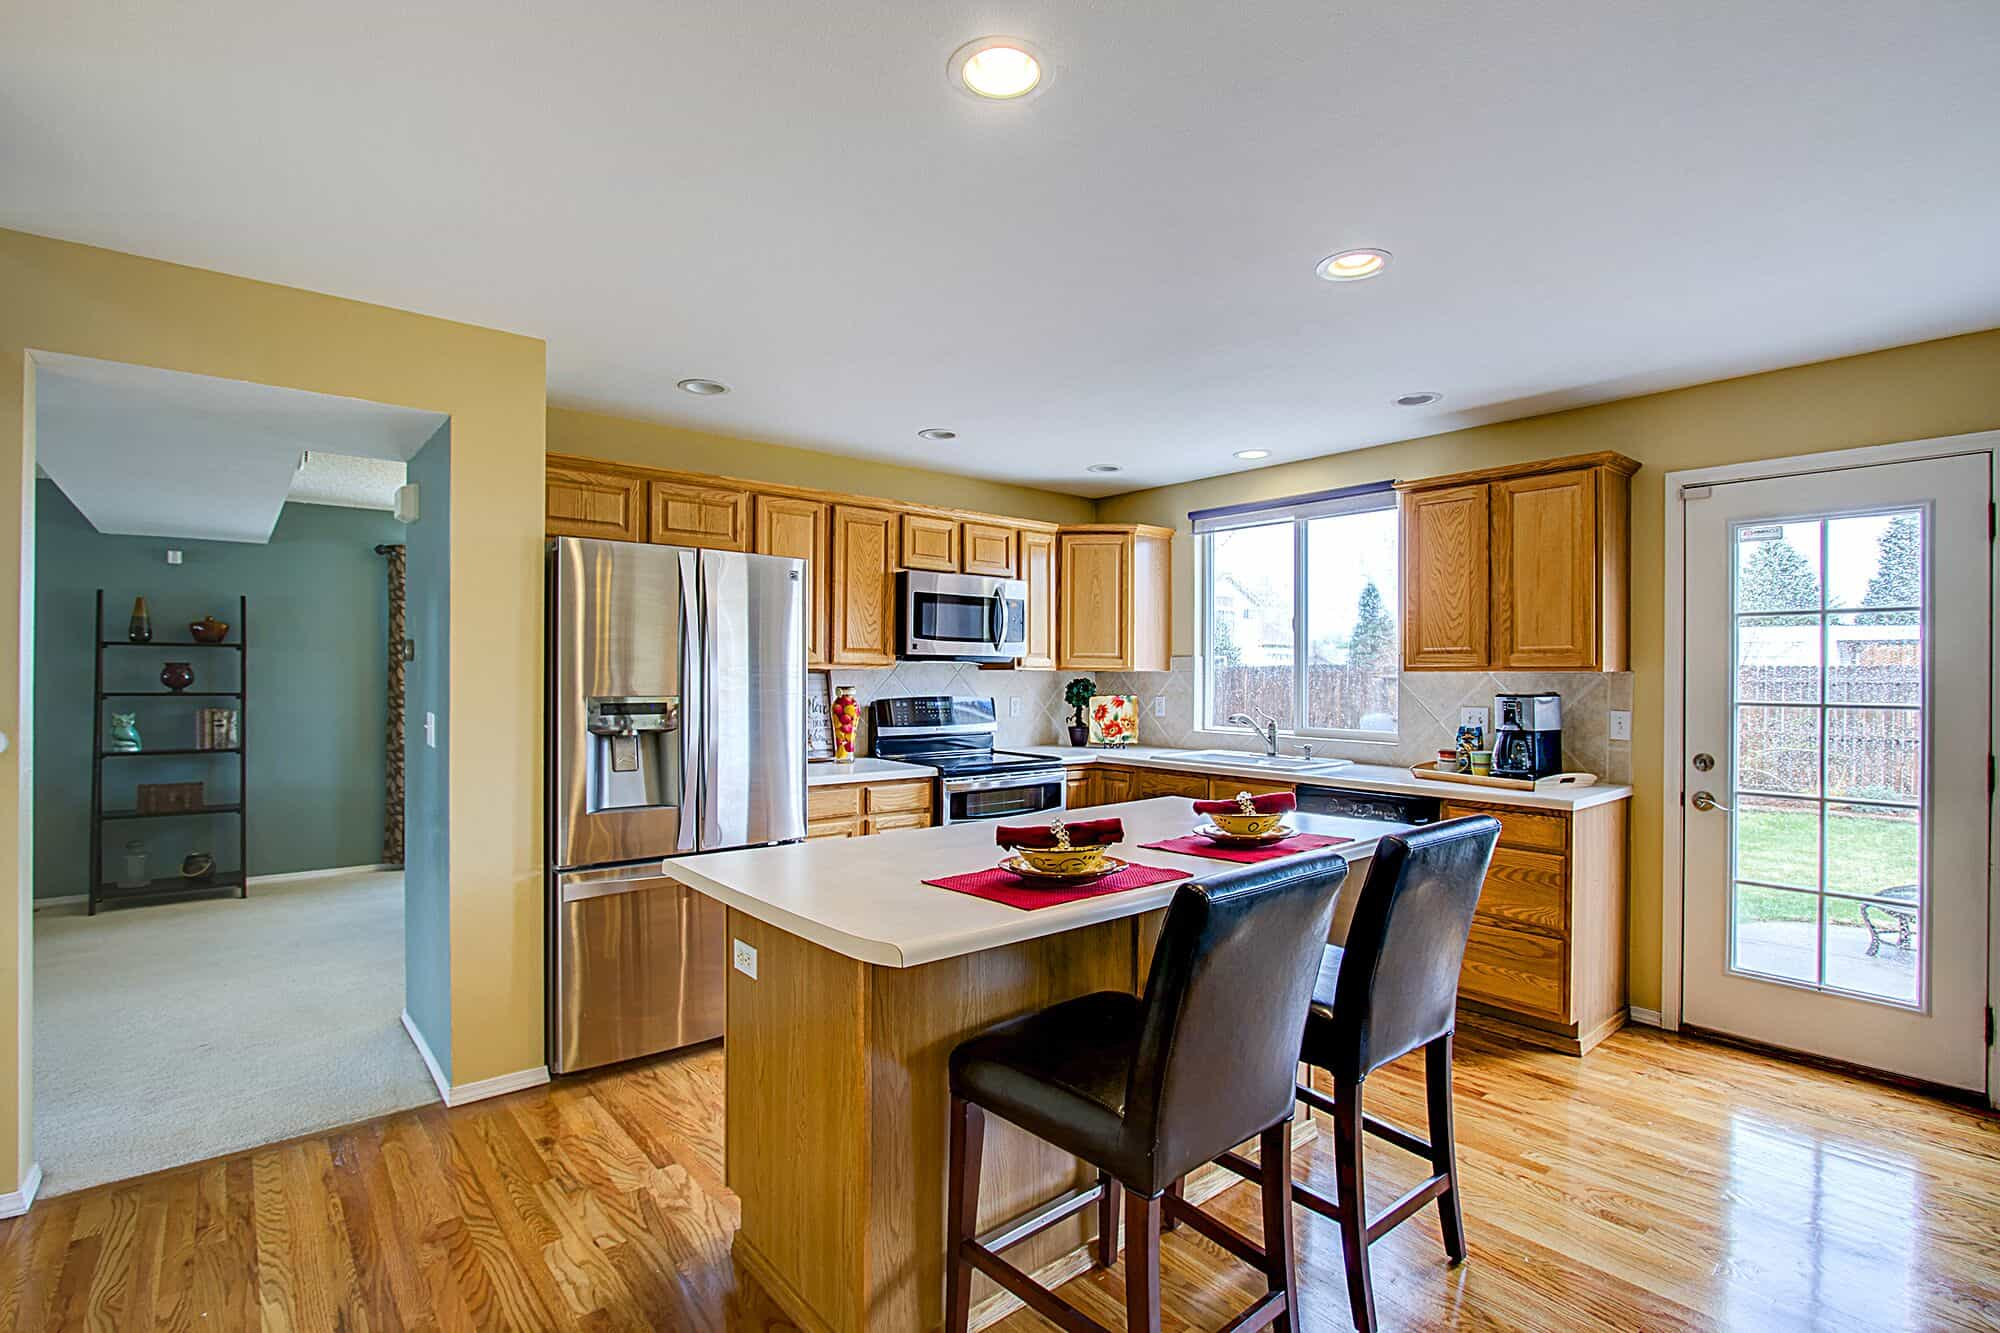 Kitchen with Dining Room in Backyard